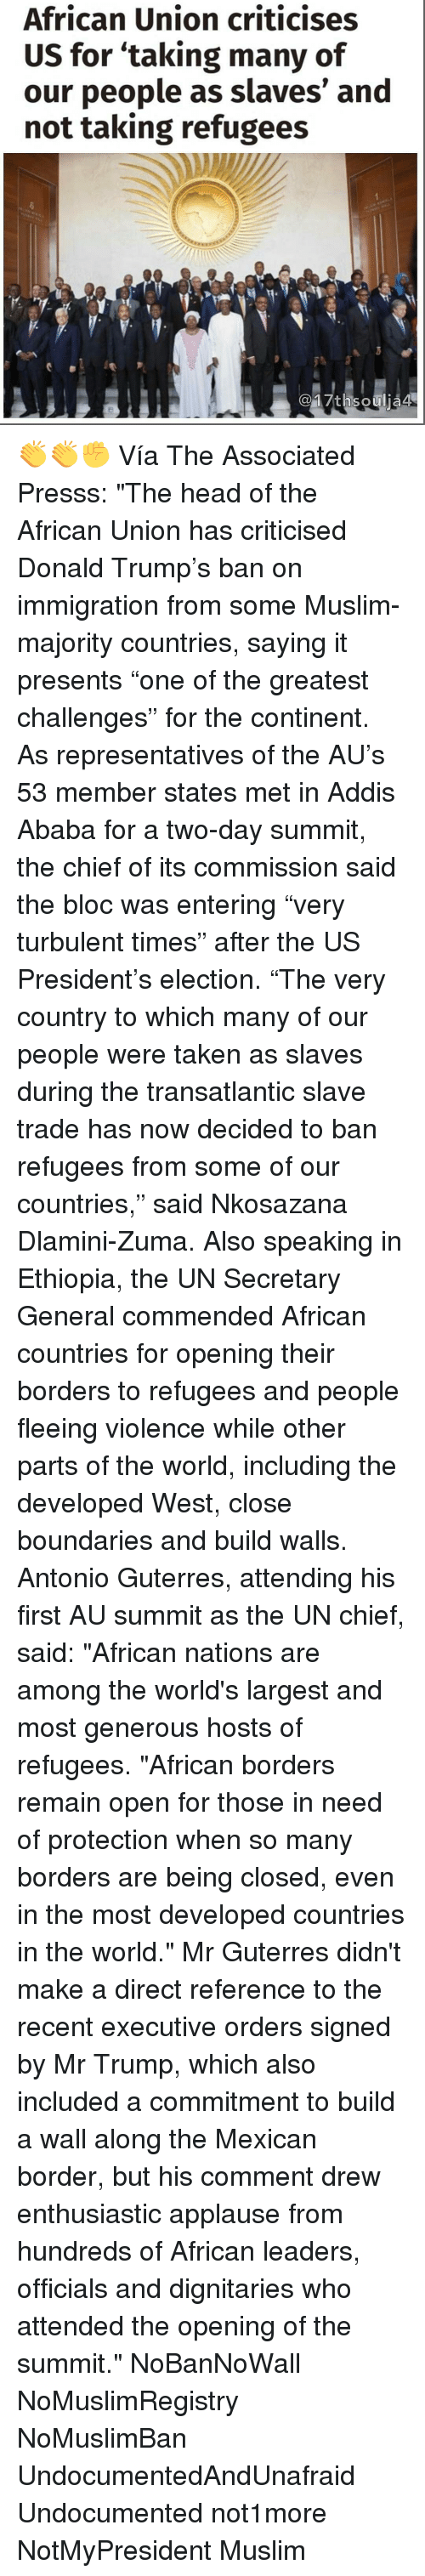 """Turbulent: African Union criticises  US for taking many of  our people as slaves' and  not taking refugees  17thsoulja4 👏👏✊ Vía The Associated Presss: """"The head of the African Union has criticised Donald Trump's ban on immigration from some Muslim-majority countries, saying it presents """"one of the greatest challenges"""" for the continent. As representatives of the AU's 53 member states met in Addis Ababa for a two-day summit, the chief of its commission said the bloc was entering """"very turbulent times"""" after the US President's election. """"The very country to which many of our people were taken as slaves during the transatlantic slave trade has now decided to ban refugees from some of our countries,"""" said Nkosazana Dlamini-Zuma. Also speaking in Ethiopia, the UN Secretary General commended African countries for opening their borders to refugees and people fleeing violence while other parts of the world, including the developed West, close boundaries and build walls. Antonio Guterres, attending his first AU summit as the UN chief, said: """"African nations are among the world's largest and most generous hosts of refugees. """"African borders remain open for those in need of protection when so many borders are being closed, even in the most developed countries in the world."""" Mr Guterres didn't make a direct reference to the recent executive orders signed by Mr Trump, which also included a commitment to build a wall along the Mexican border, but his comment drew enthusiastic applause from hundreds of African leaders, officials and dignitaries who attended the opening of the summit."""" NoBanNoWall NoMuslimRegistry NoMuslimBan UndocumentedAndUnafraid Undocumented not1more NotMyPresident Muslim"""